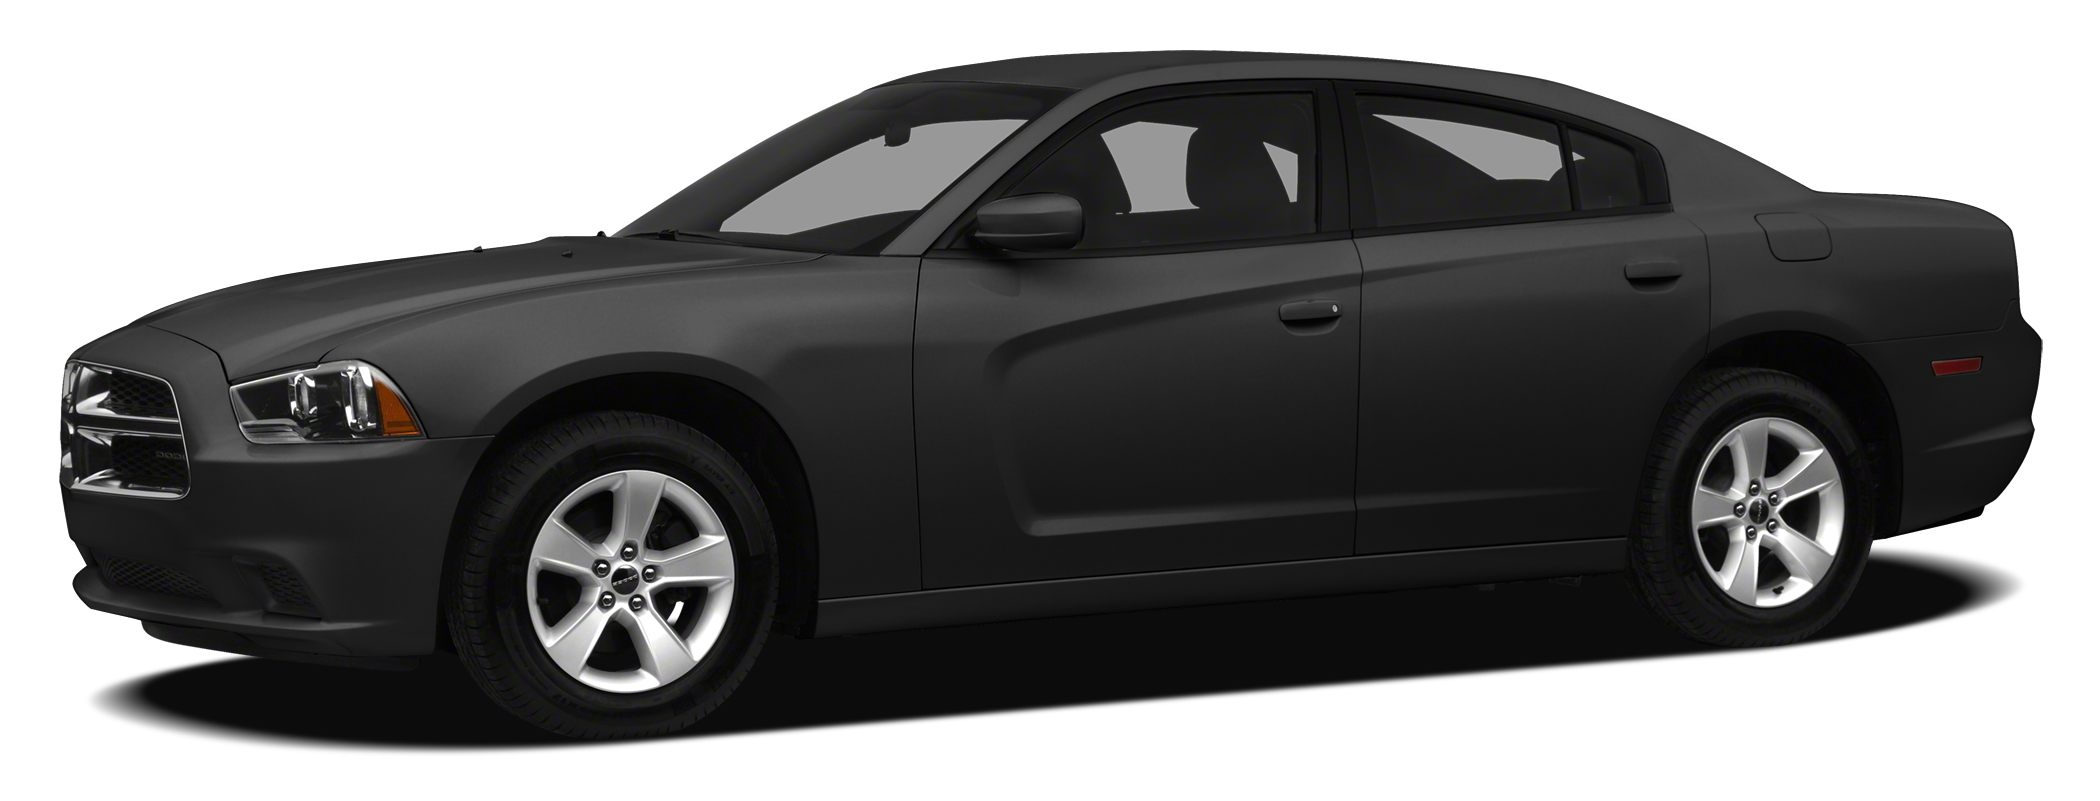 2012 Dodge Charger SXT DISCLAIMER We are excited to offer this vehicle to you but it is currently